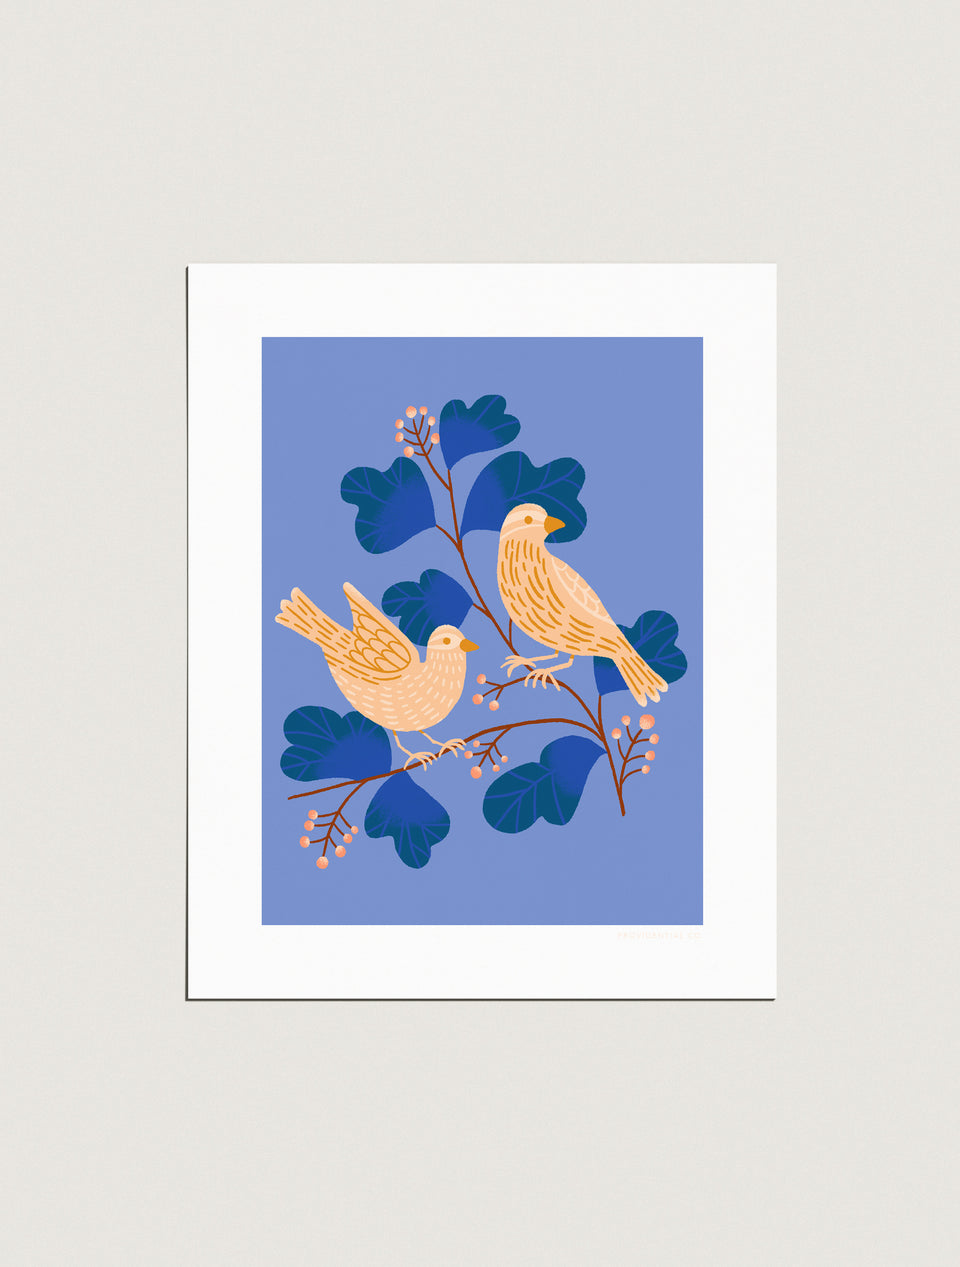 Print: Two Humble Sparrows